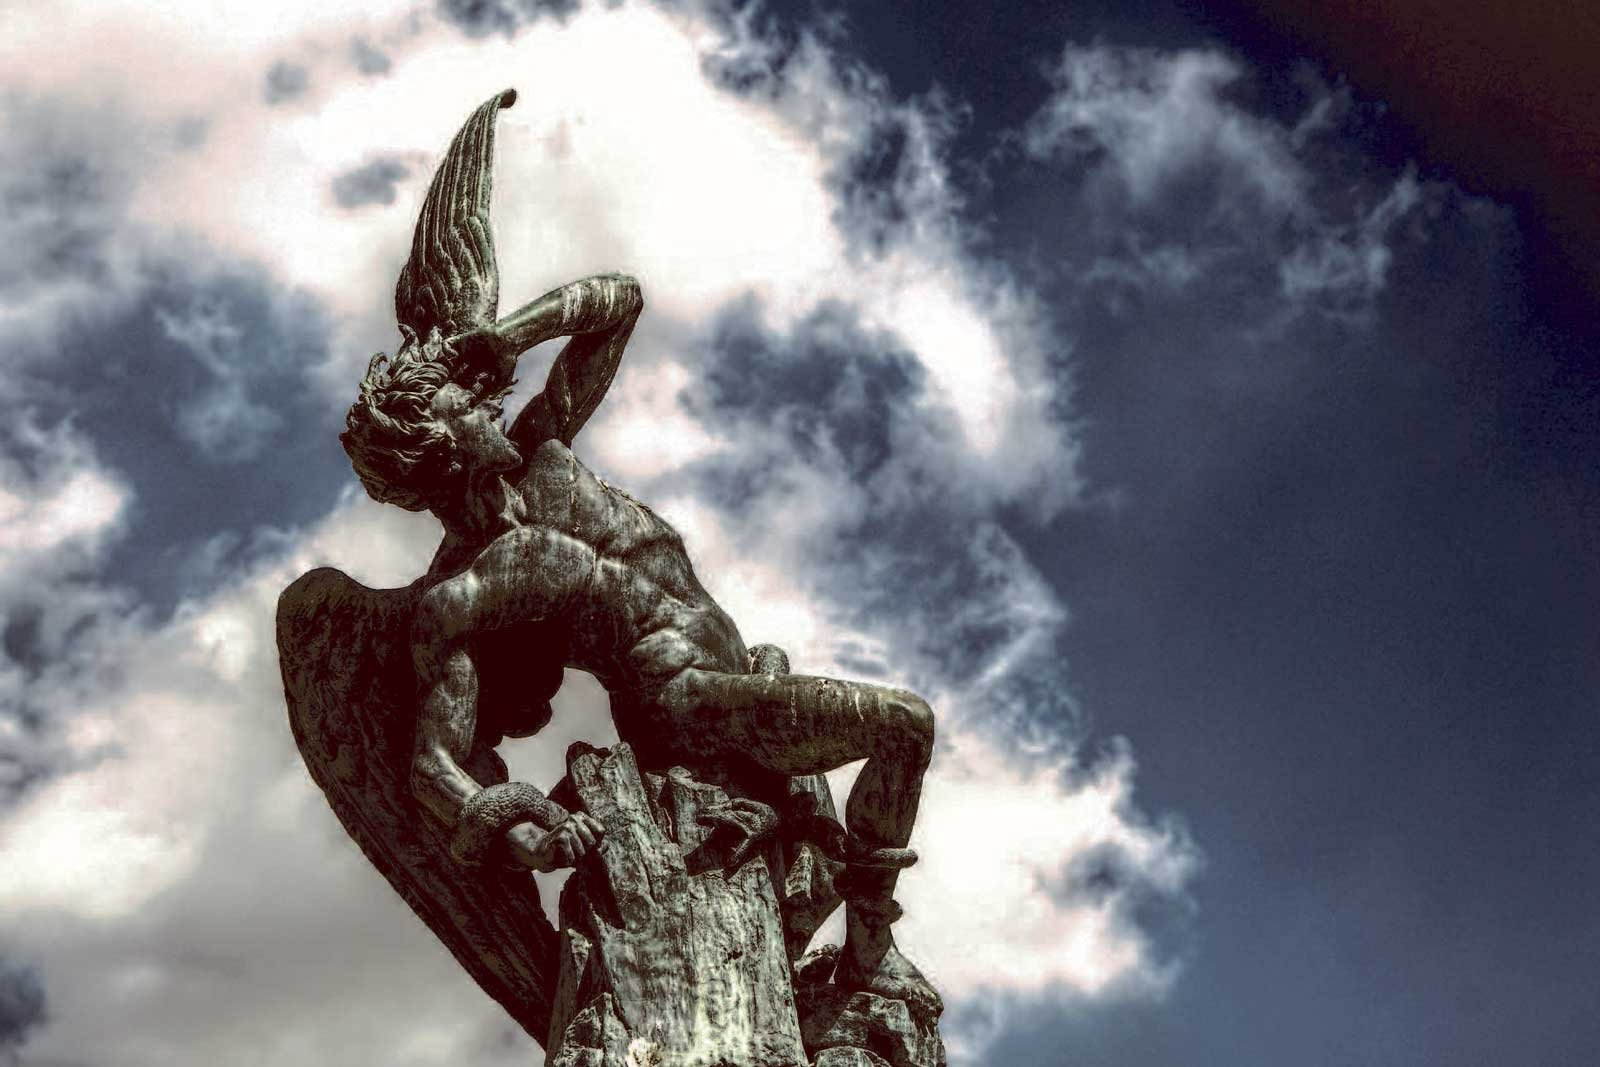 How to see the statue of Lucifer in Madrid